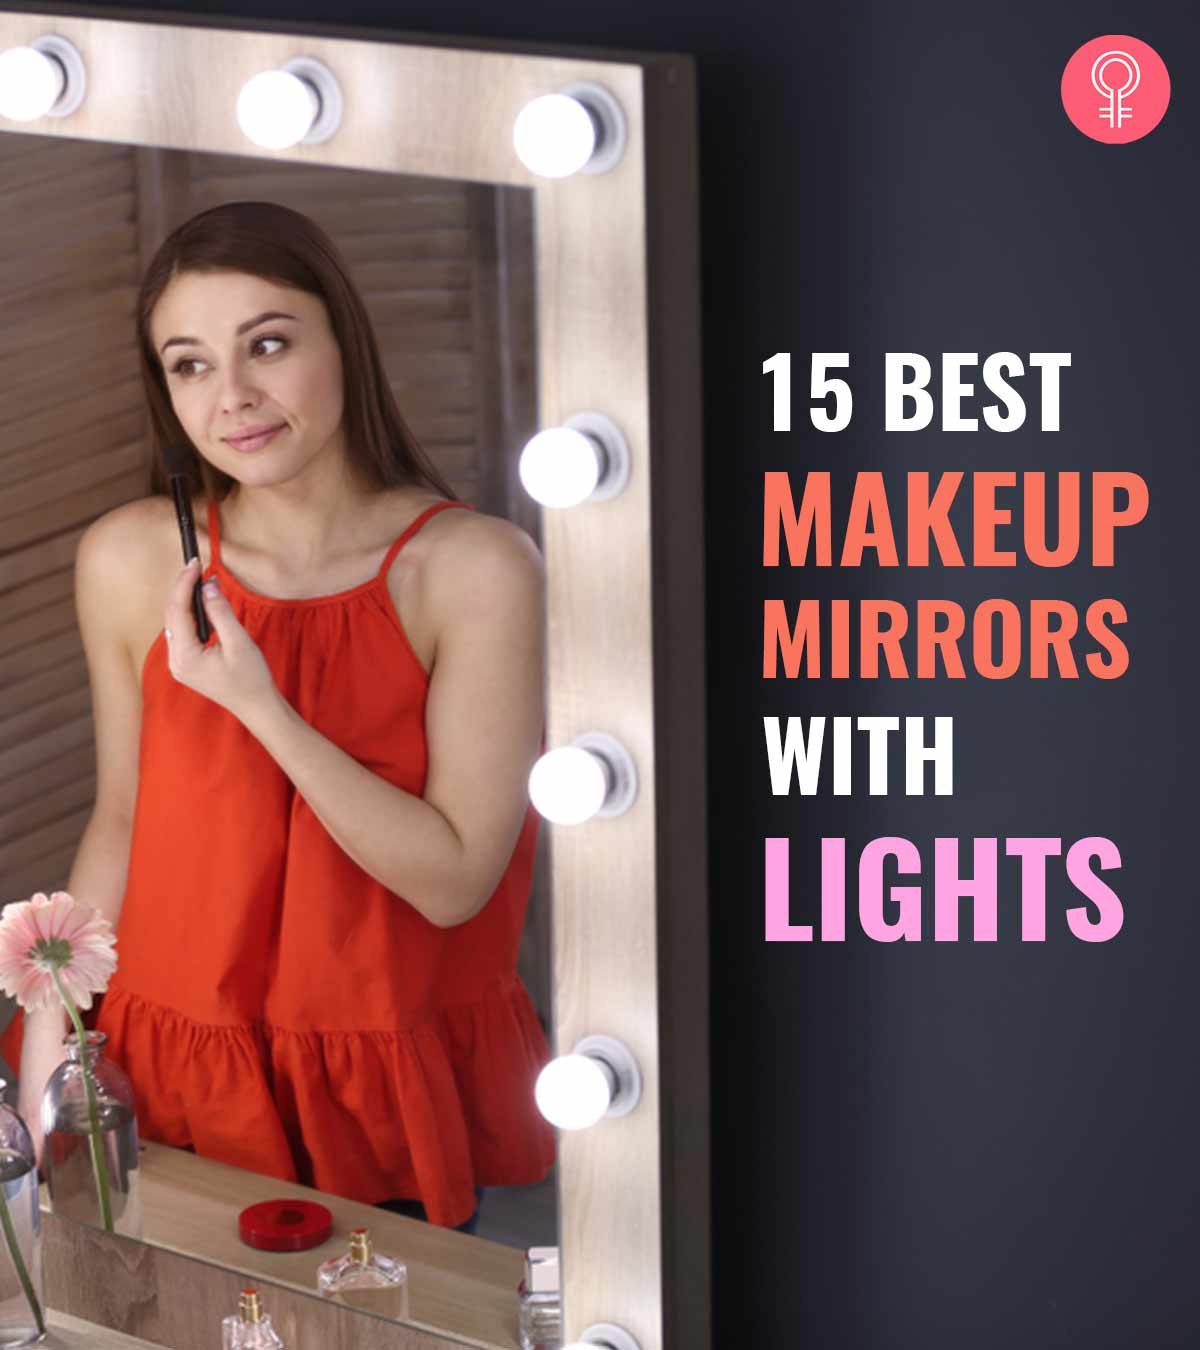 15 Best Makeup Mirrors With Lights (2020)